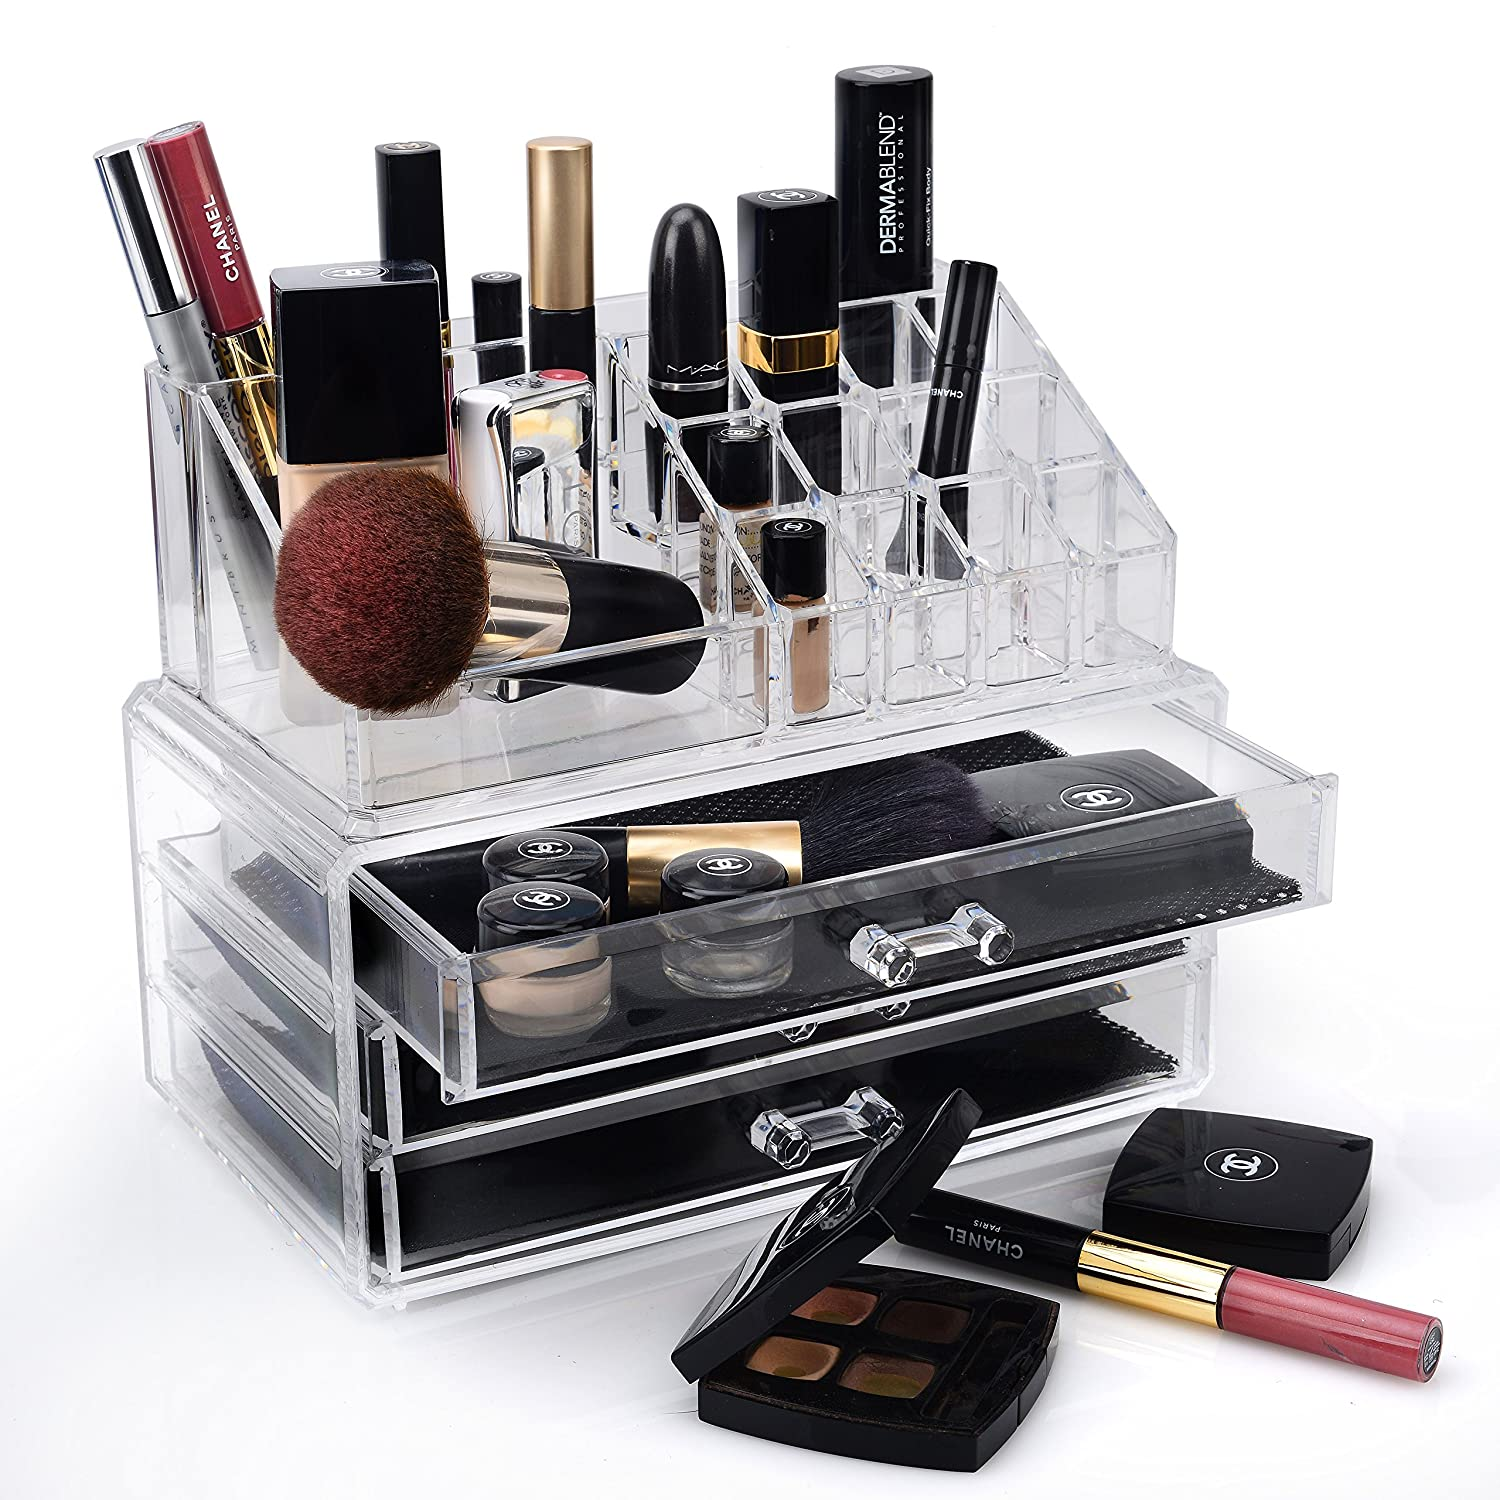 Amazon.com: Home-it Clear acrylic Jewelry organizer and makeup ...